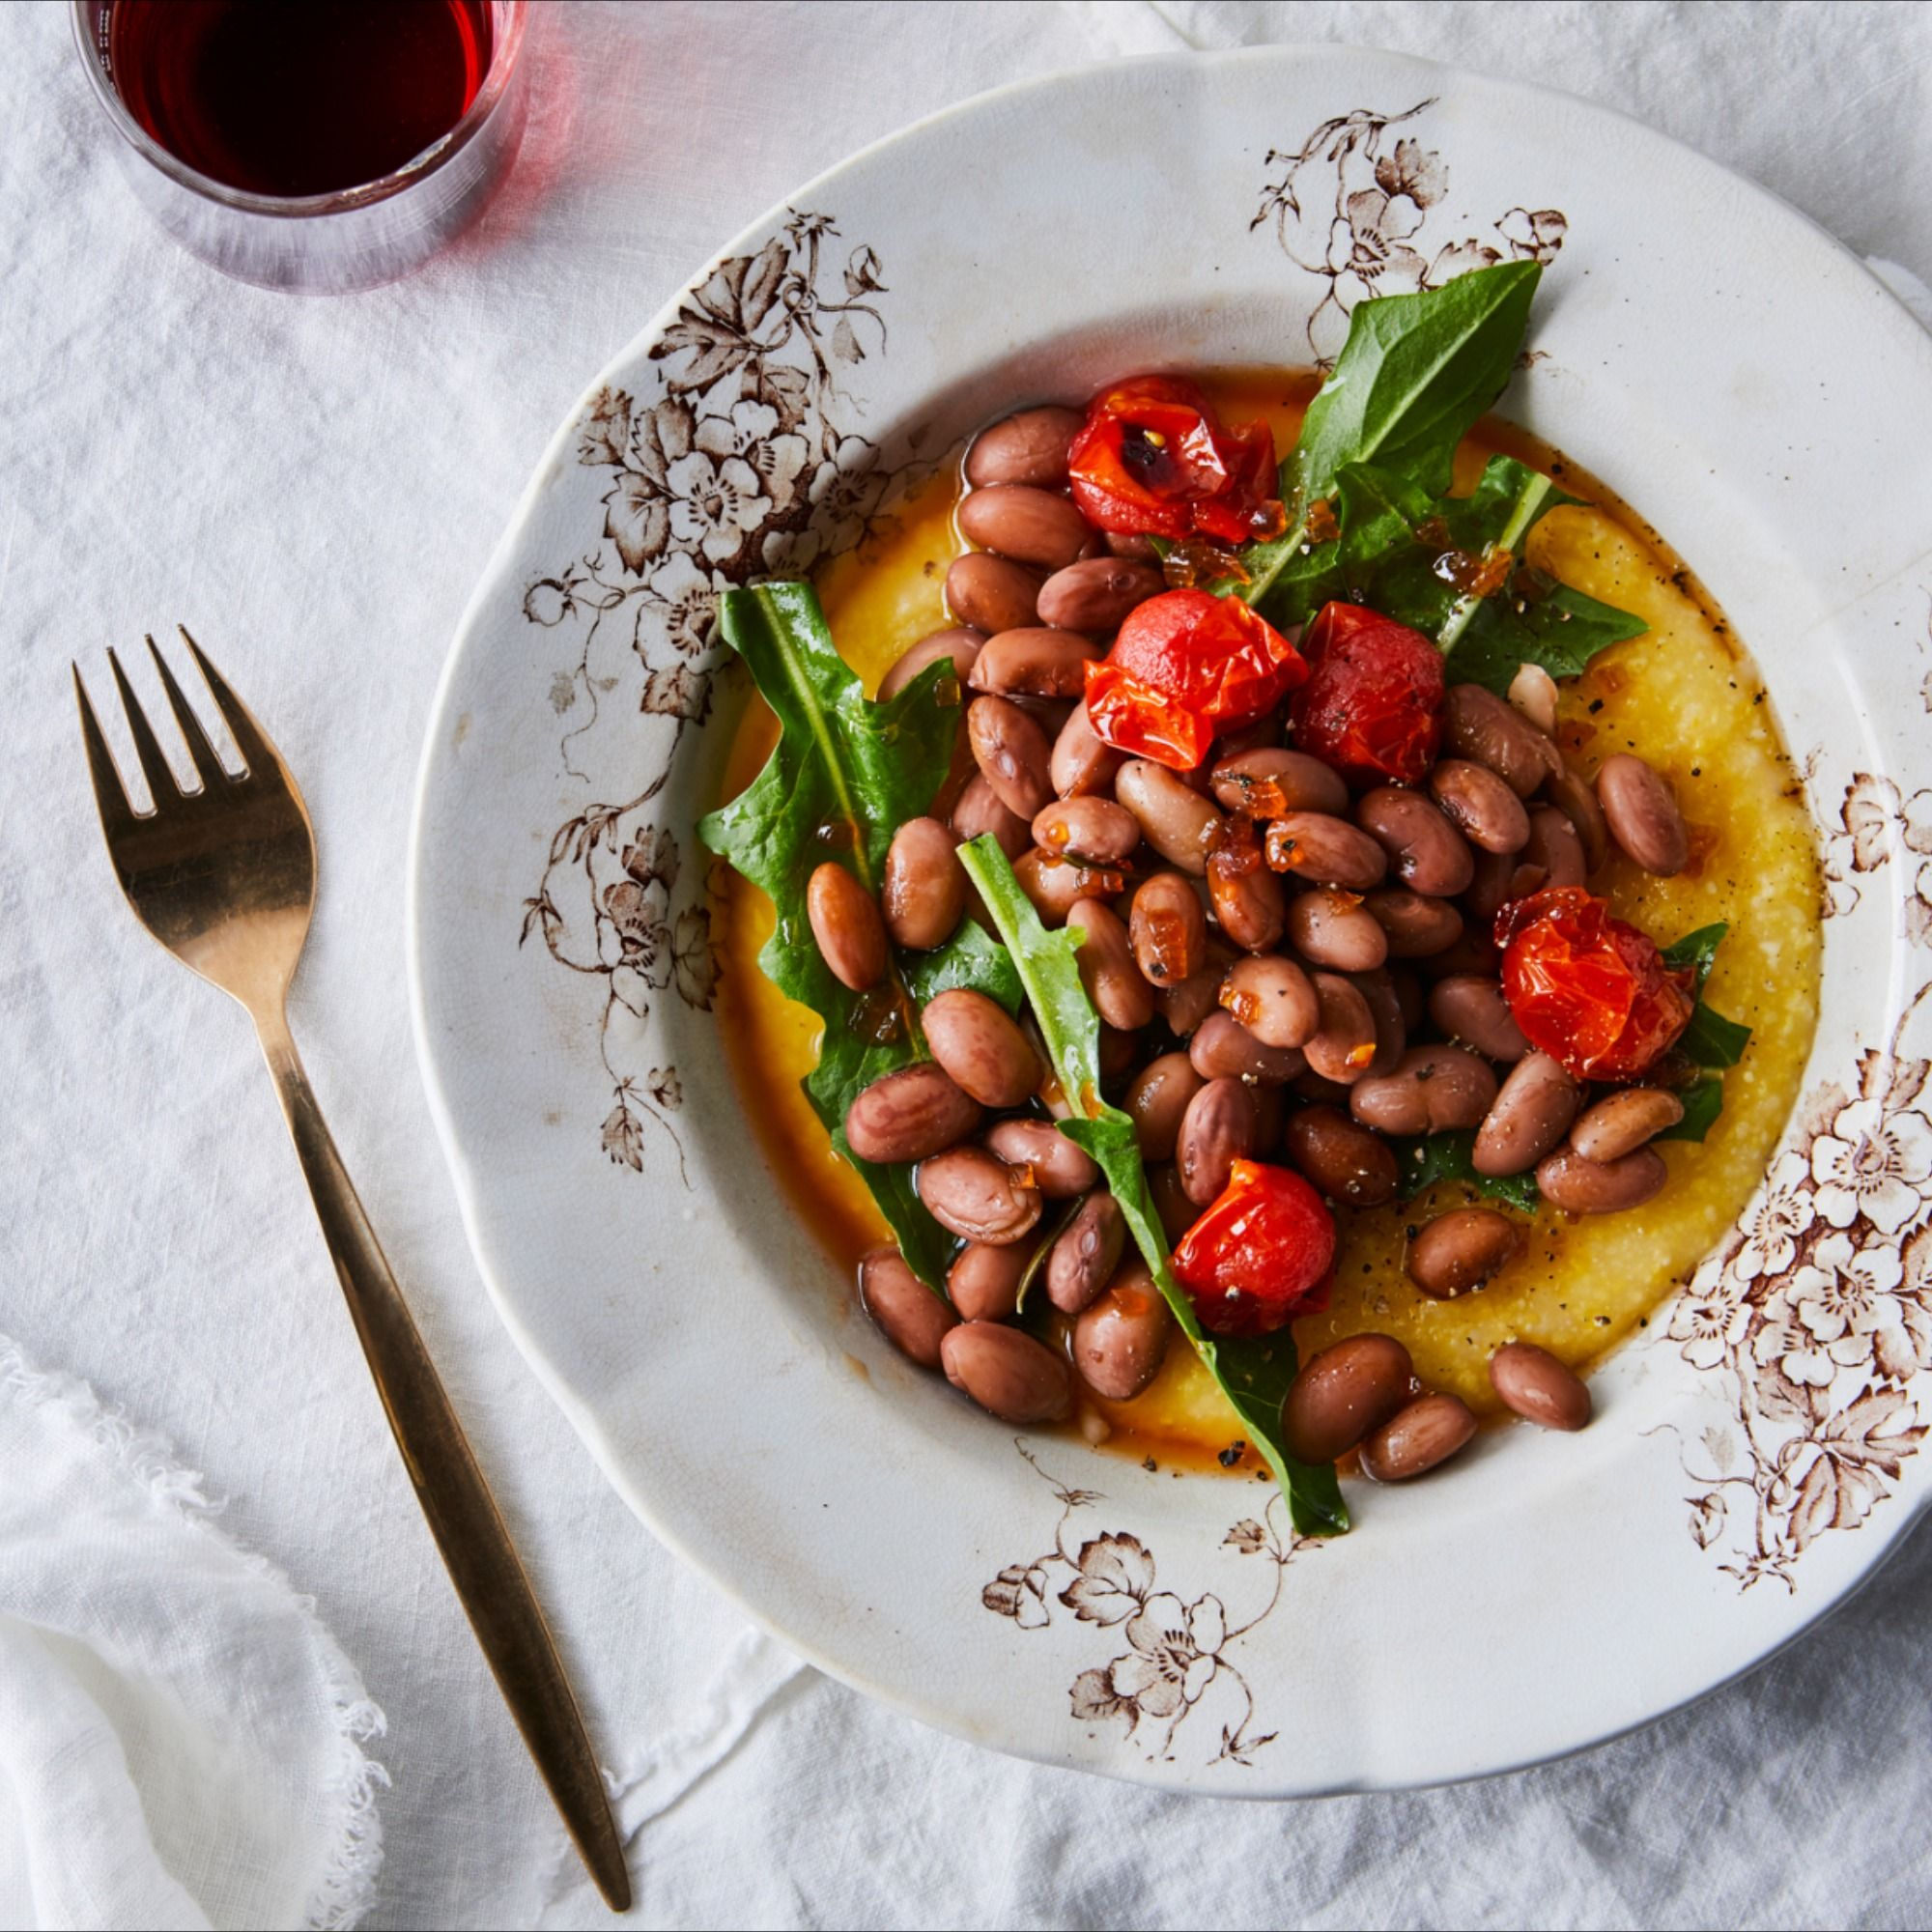 16 Vegan Slow-Cooker Recipes from Food52